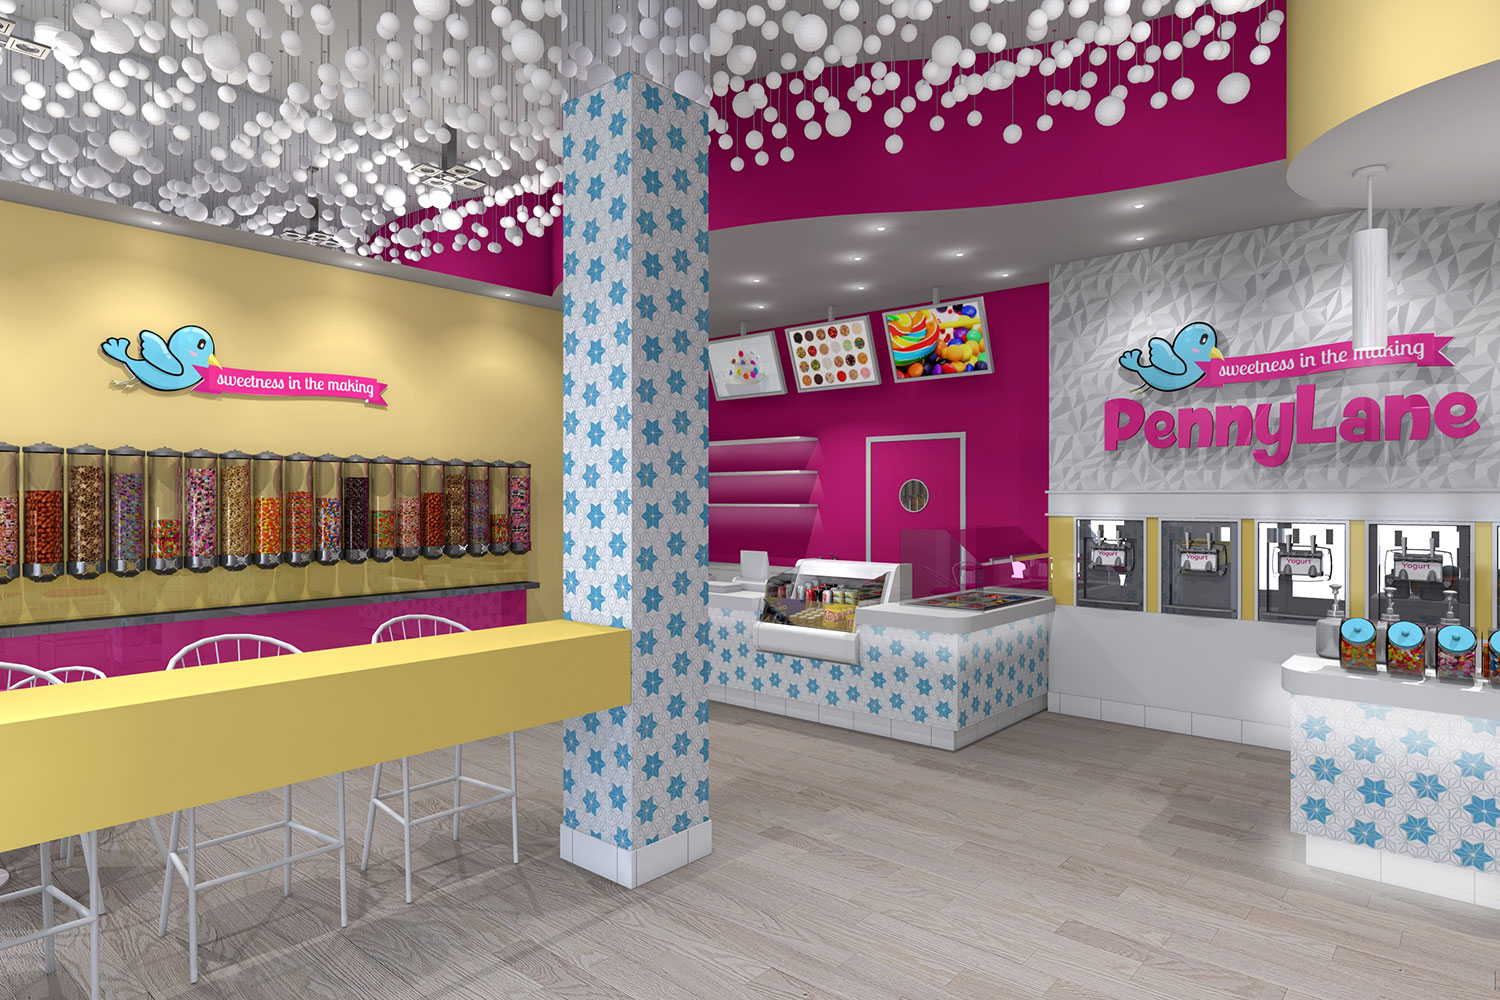 Penny Lane Yogurt shop Interior Design